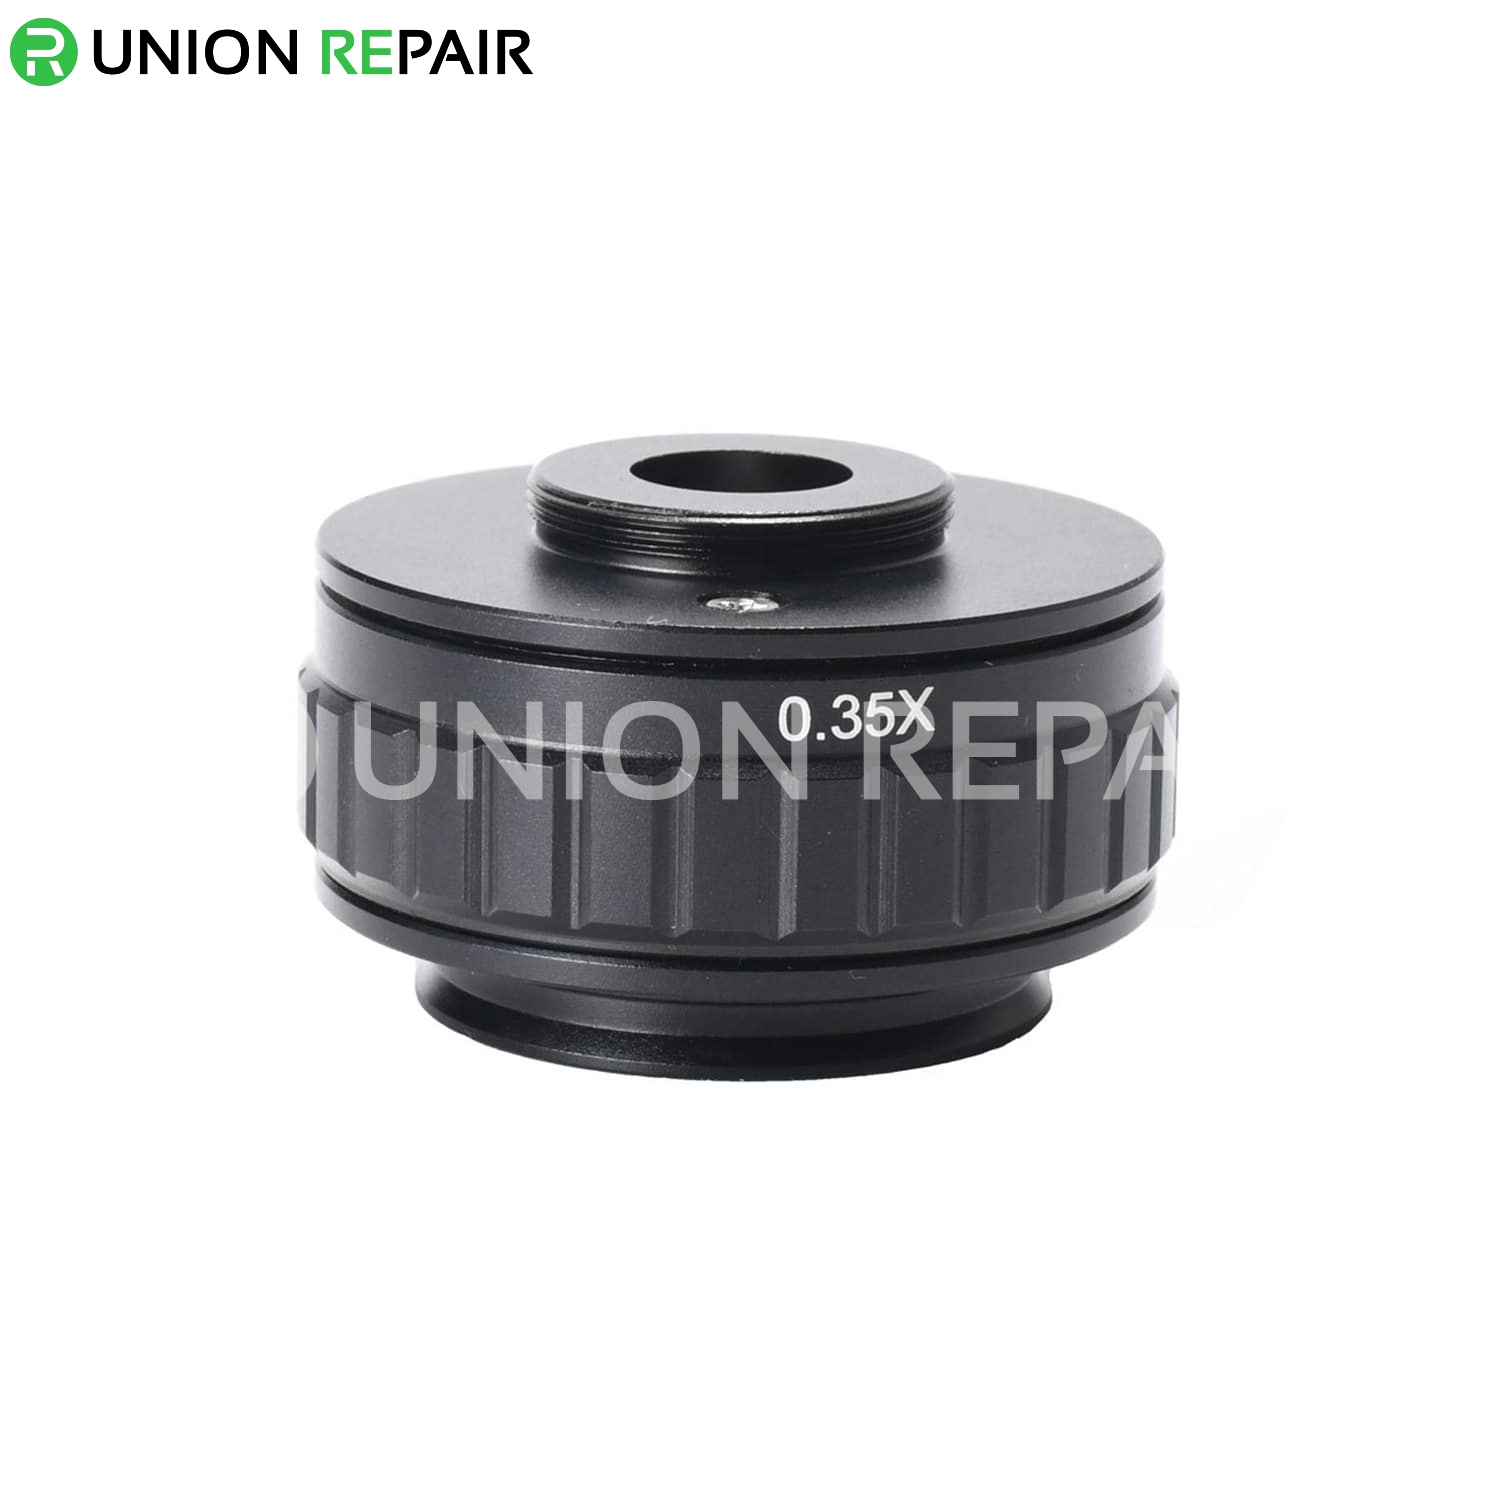 Microscope Camera C-Mount Focus Adapter